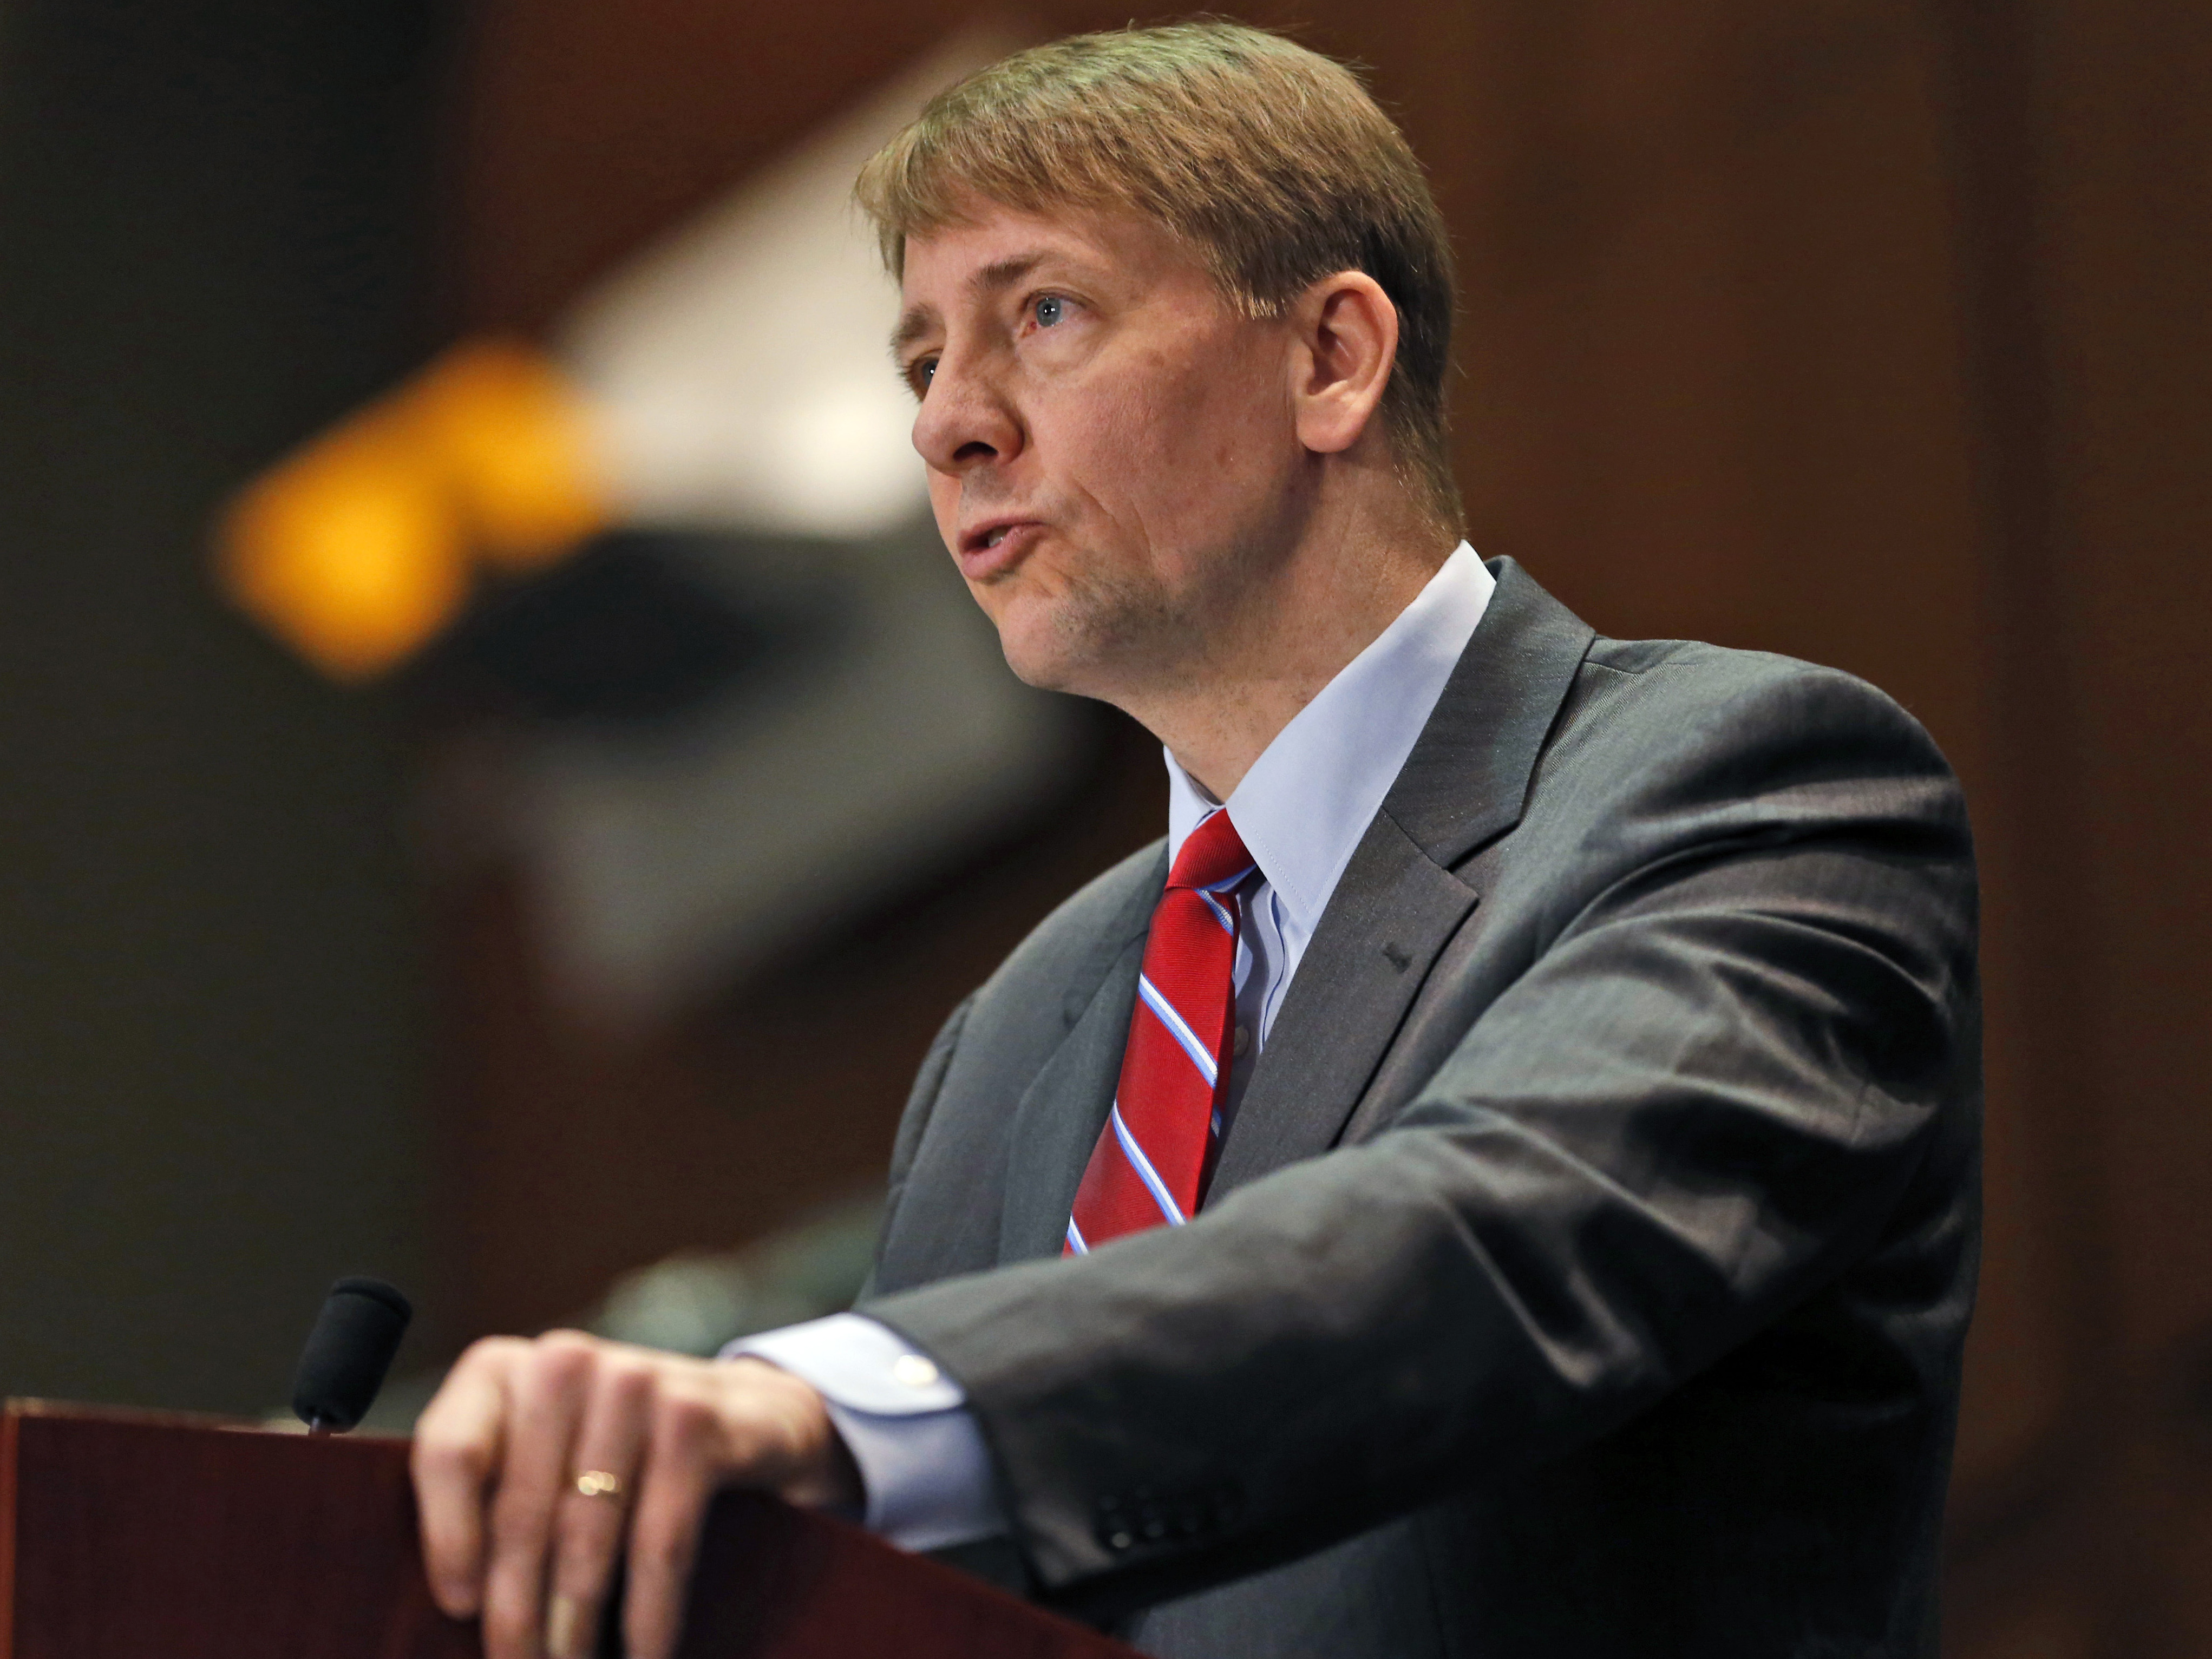 Richard Cordray, shown here at a March 2015 hearing, directs the Consumer Financial Protection Bureau, which has proposed new rules to overhaul the multi-billion dollar debt collection industry. (Photo by Steve Helber/AP)